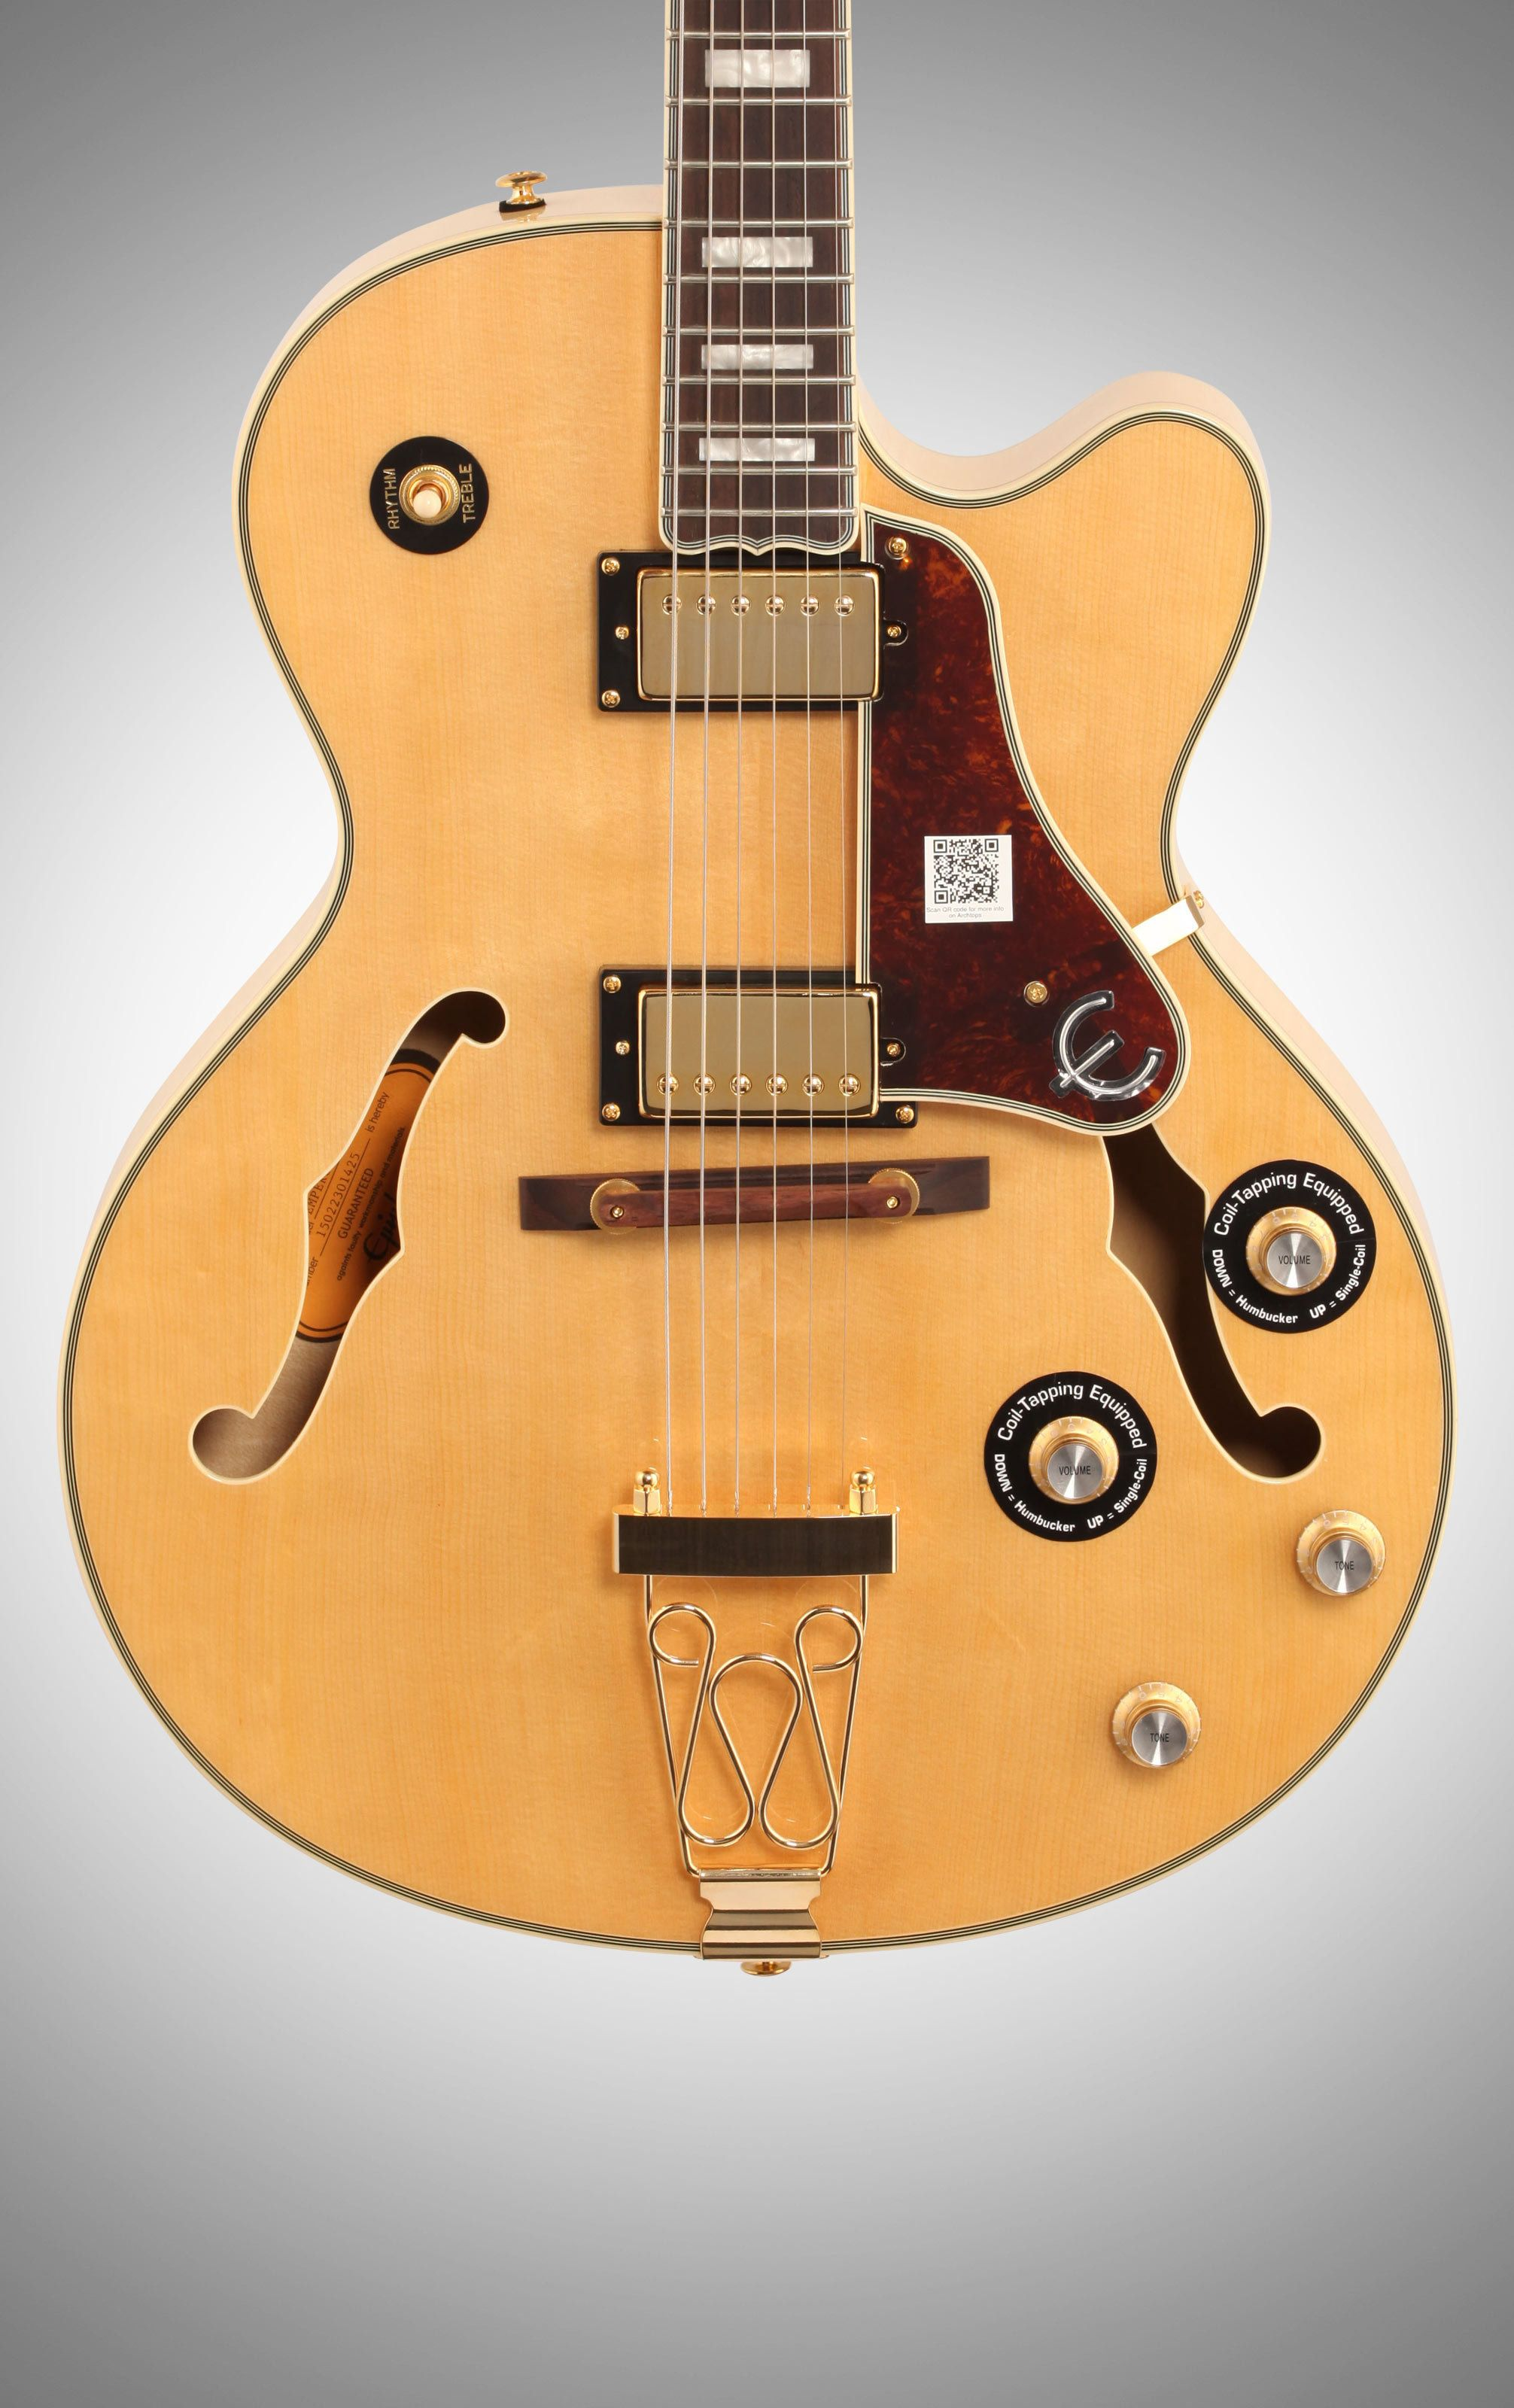 Epiphone Joe Pass Emperor-II PRO Electric Guitar, Vintage